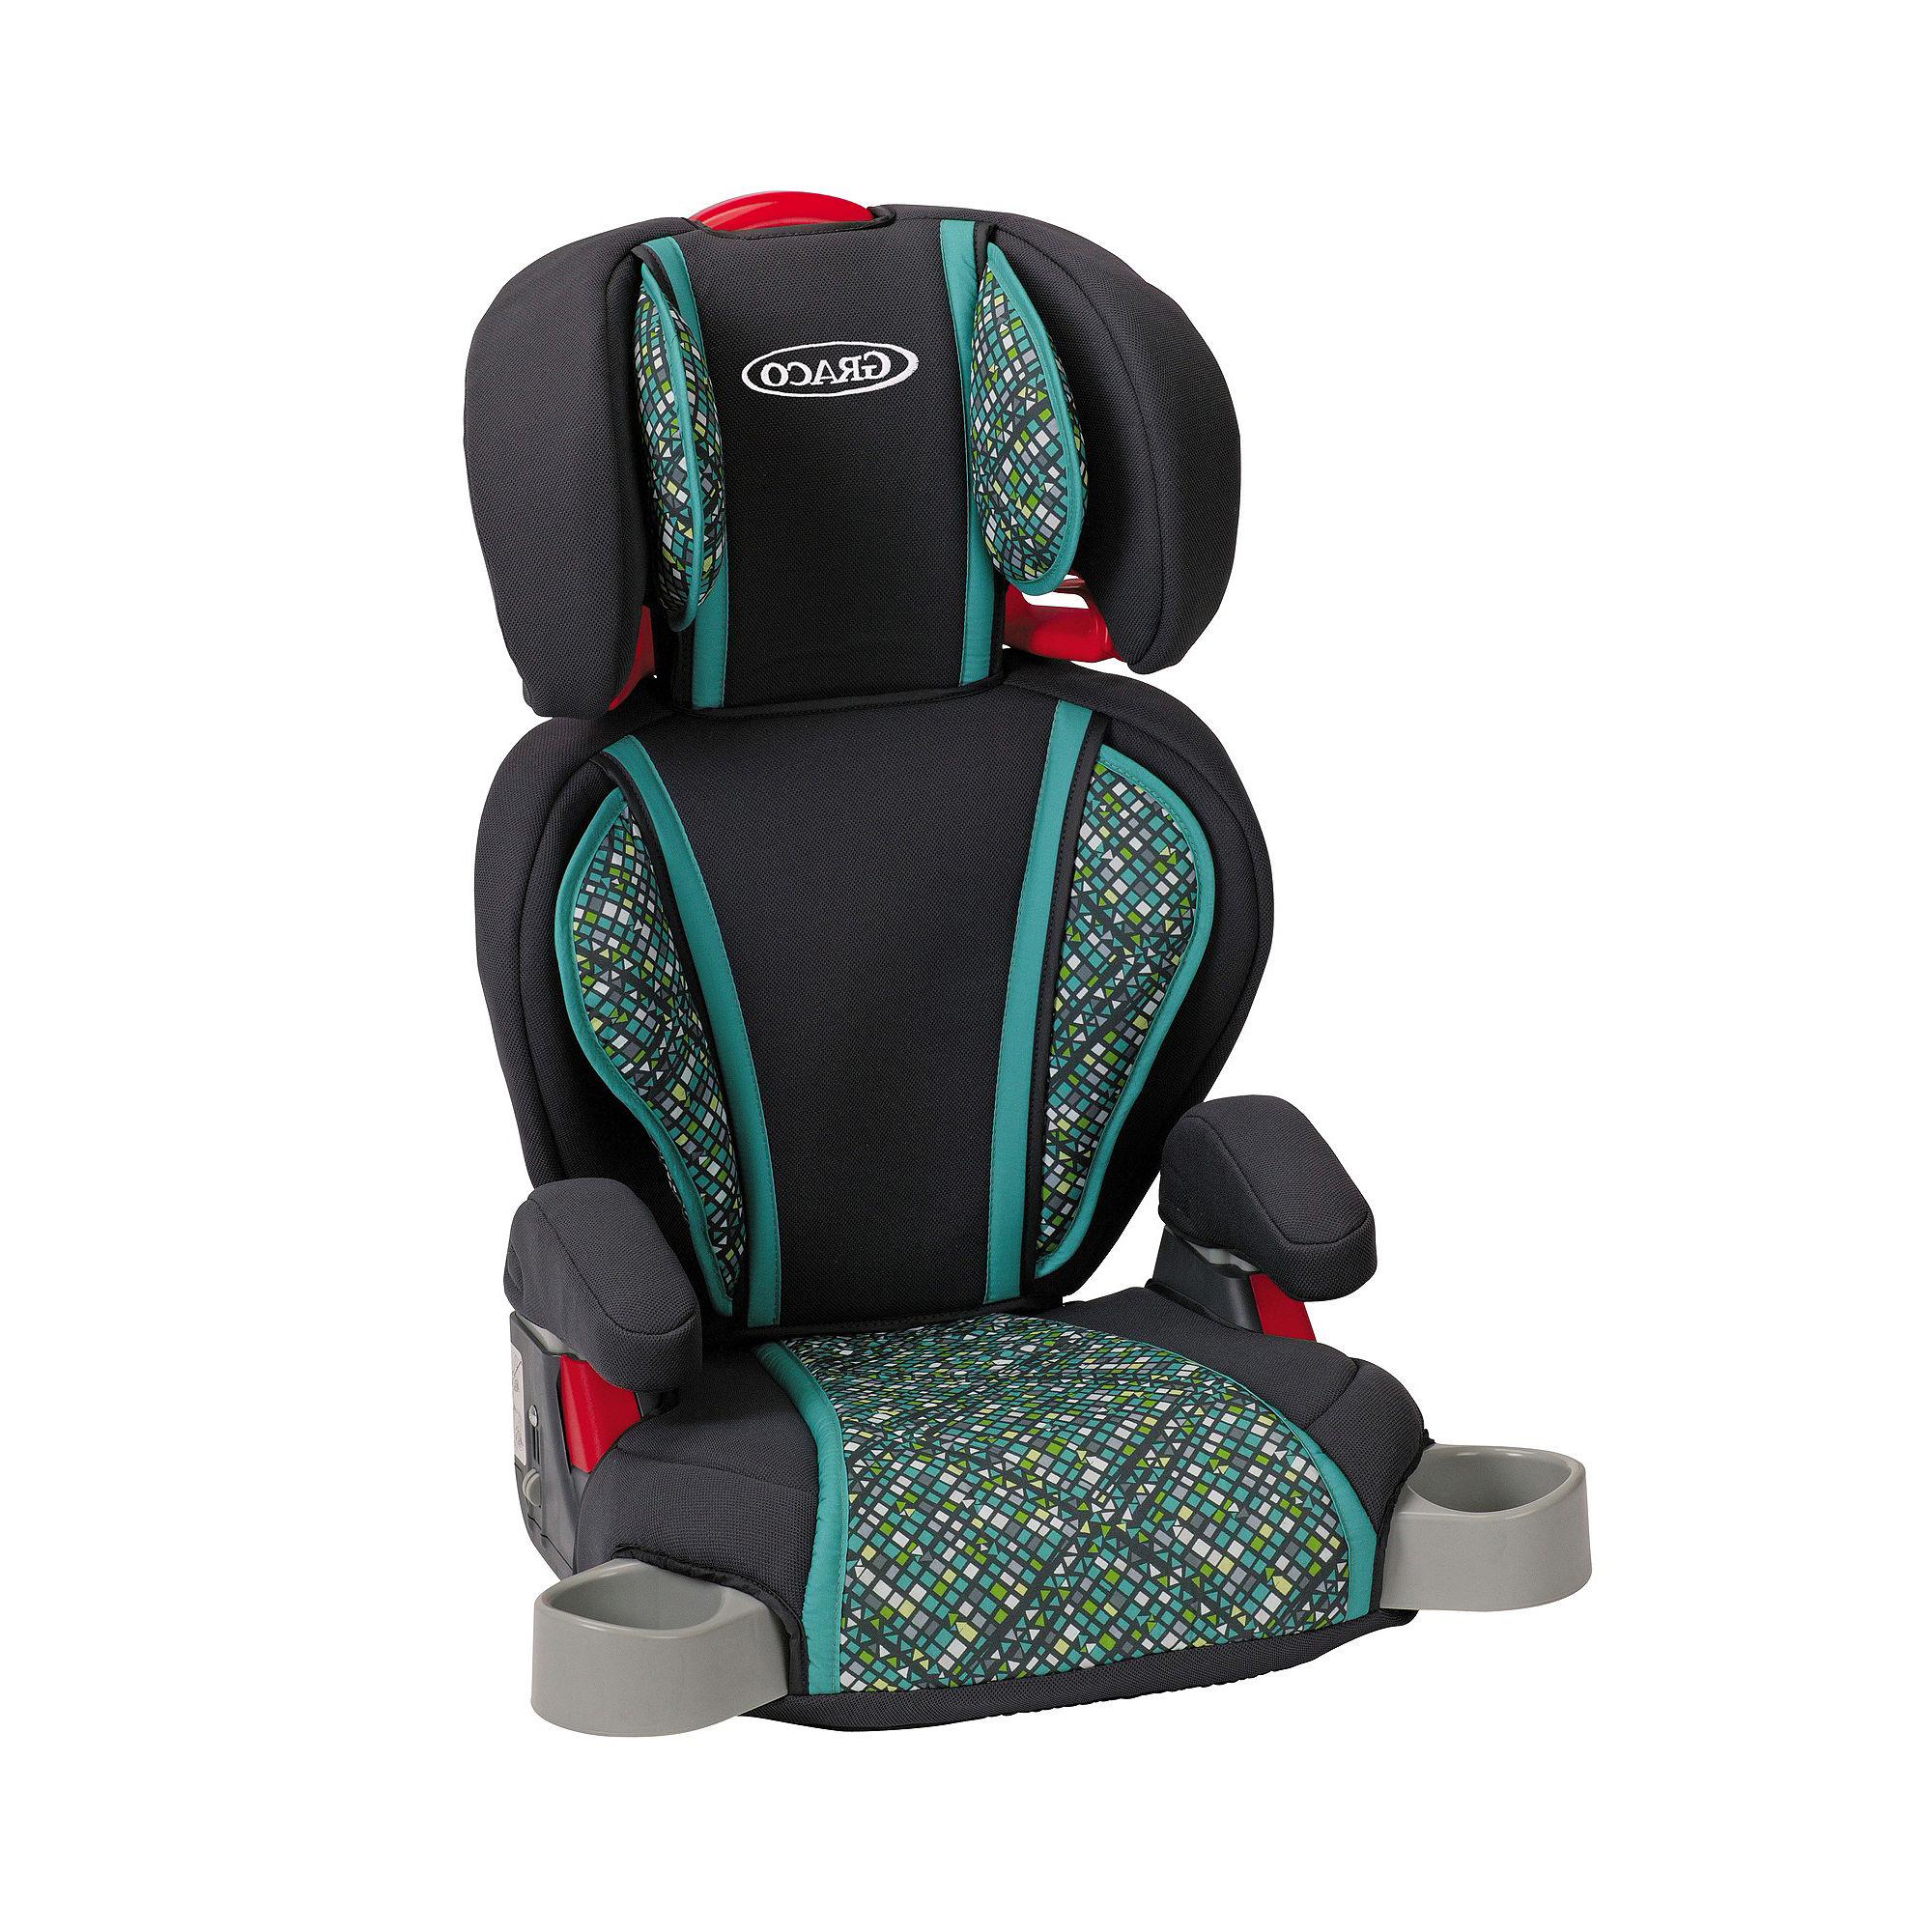 get graco highback turbobooster car seat mosaic offer cheap car seat. Black Bedroom Furniture Sets. Home Design Ideas